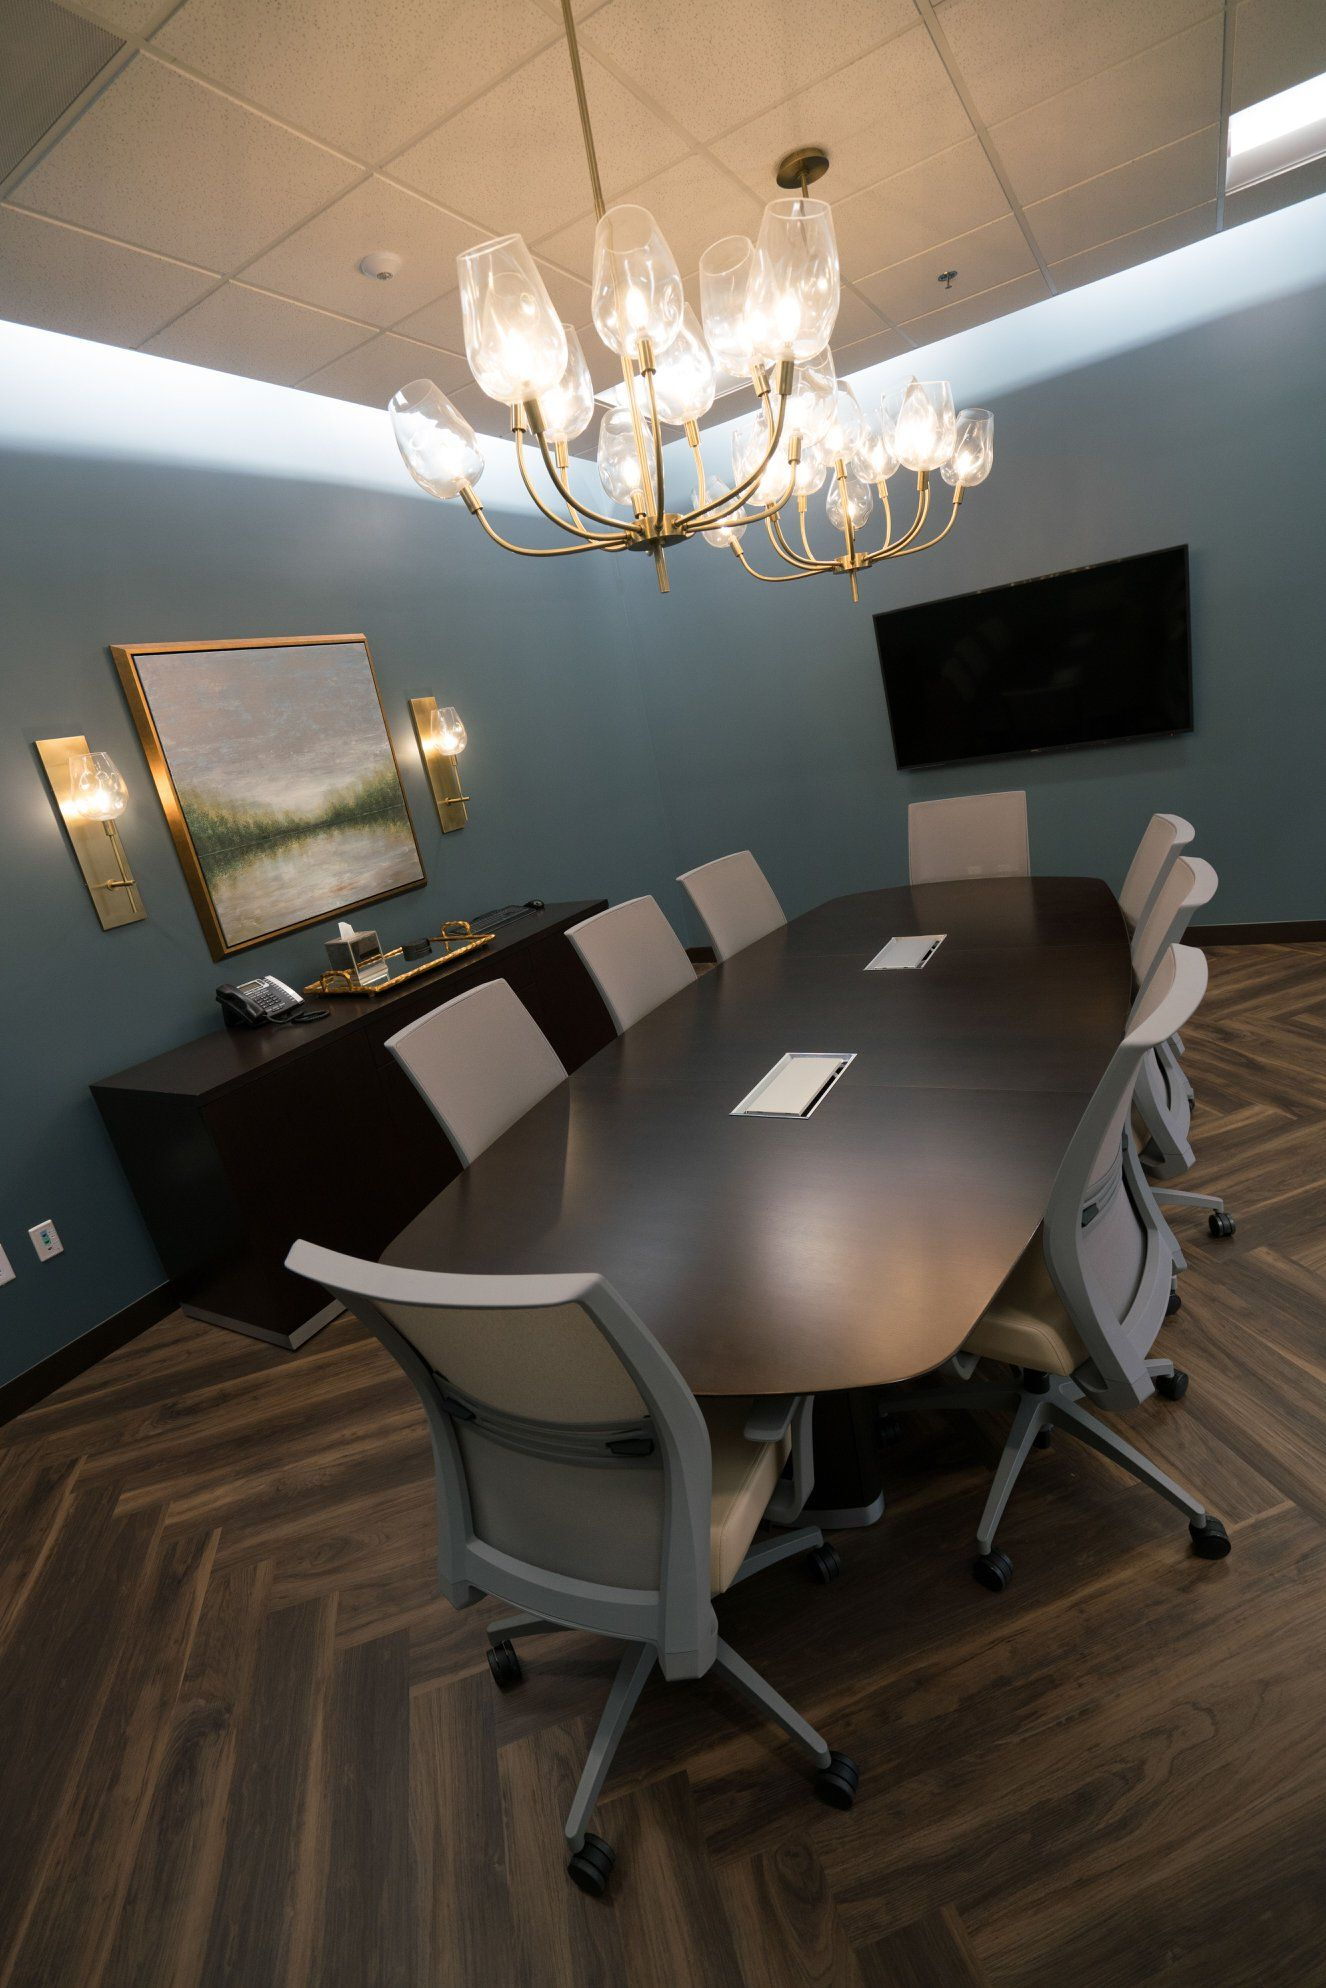 Conference Room Interior Design: Conference Room Design, Interior